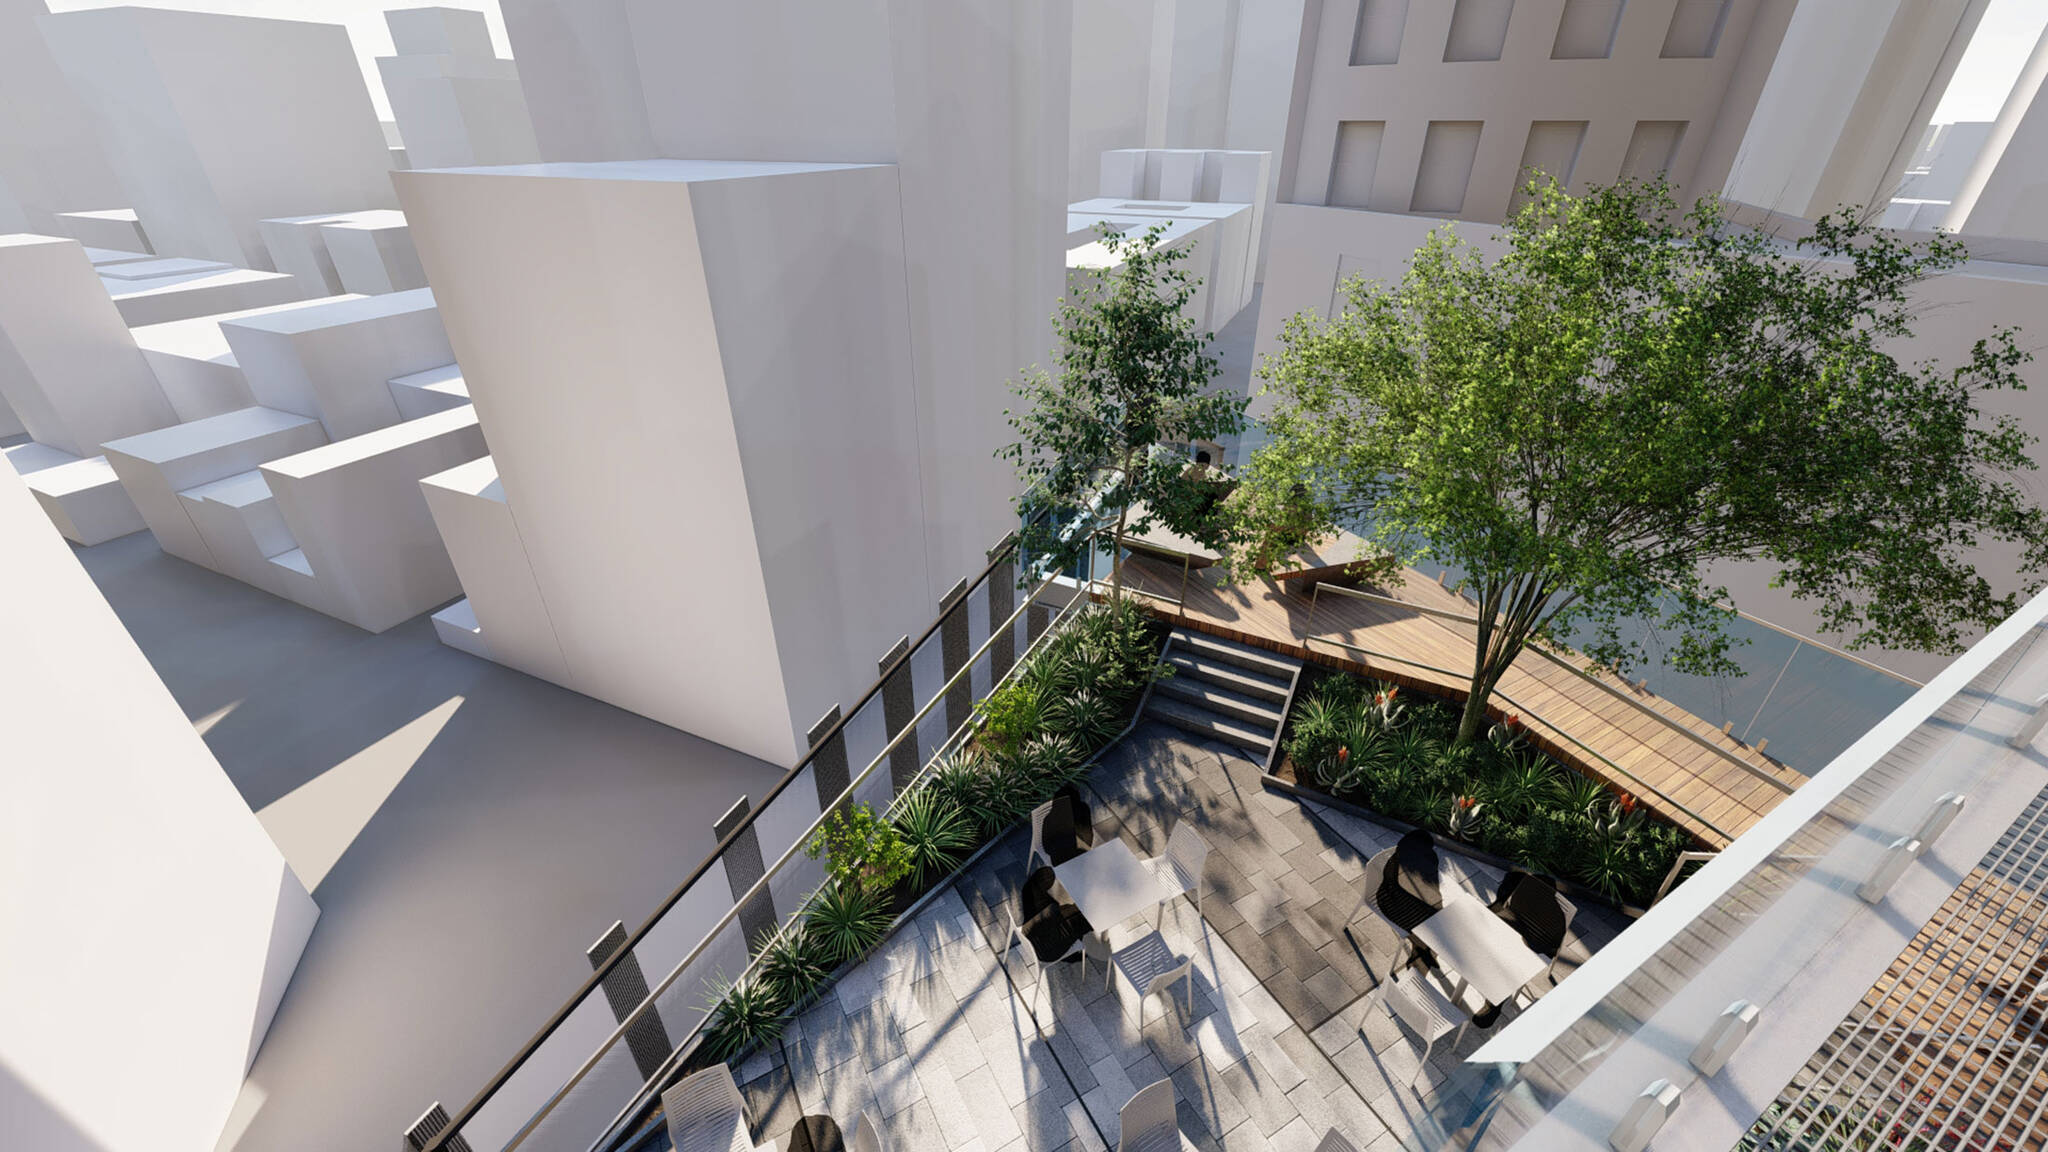 Aerial view of the terrace of the San Francisco modular project located at 570 Market Street on the Financial District of San Francisco, California designed by the architecture studio Danny Forster & Architecture